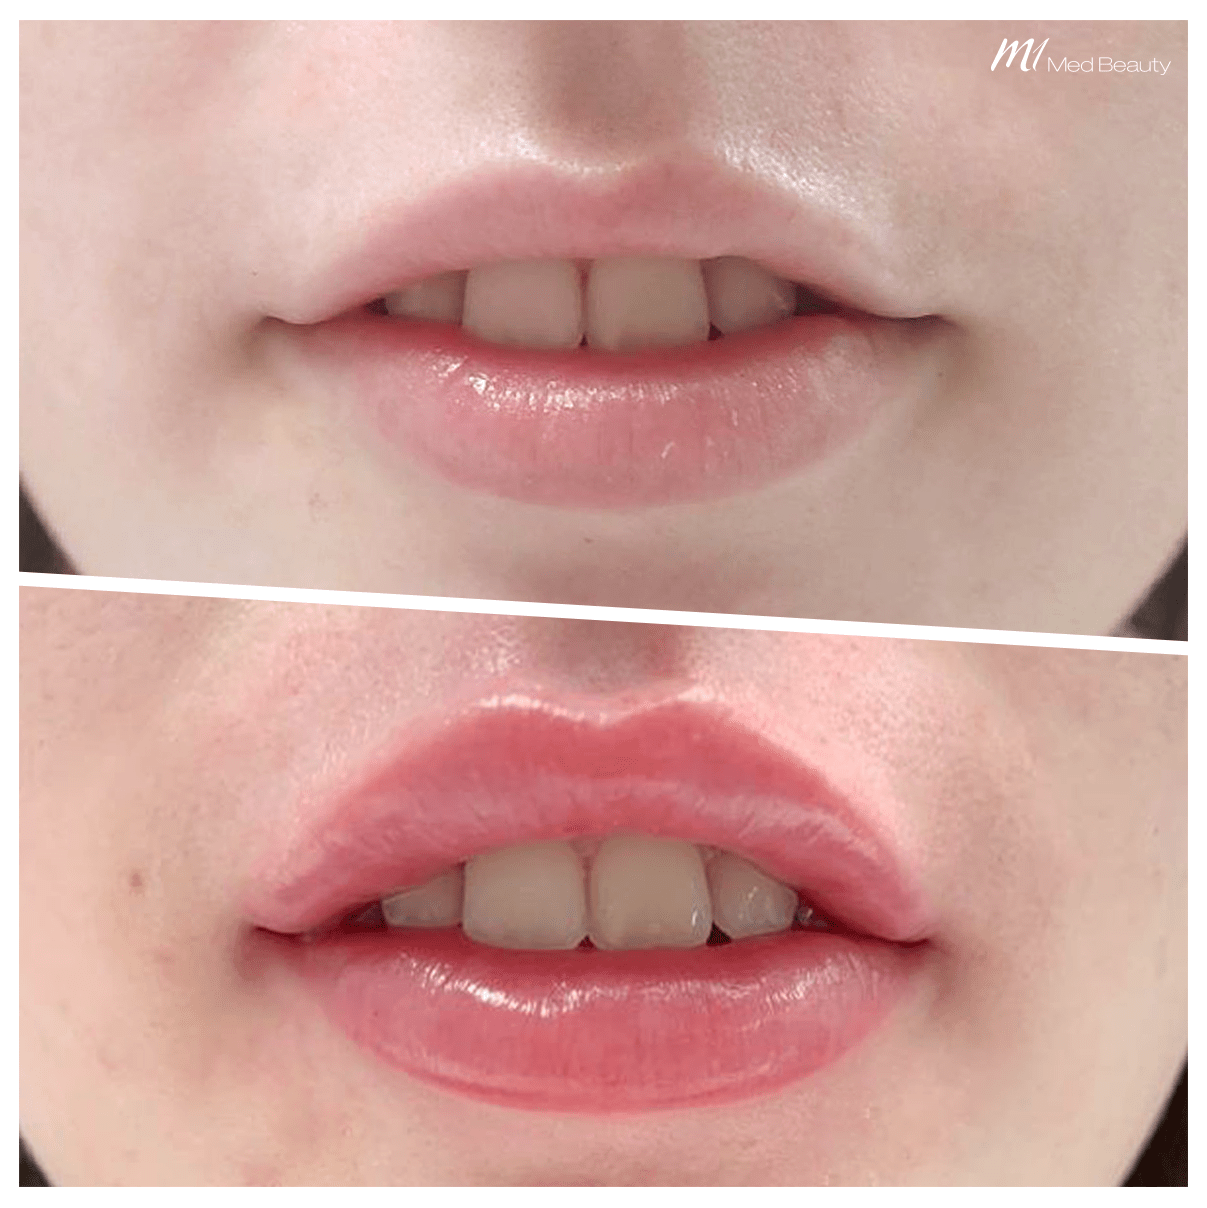 Lip filler treatment at M1 Med Beauty